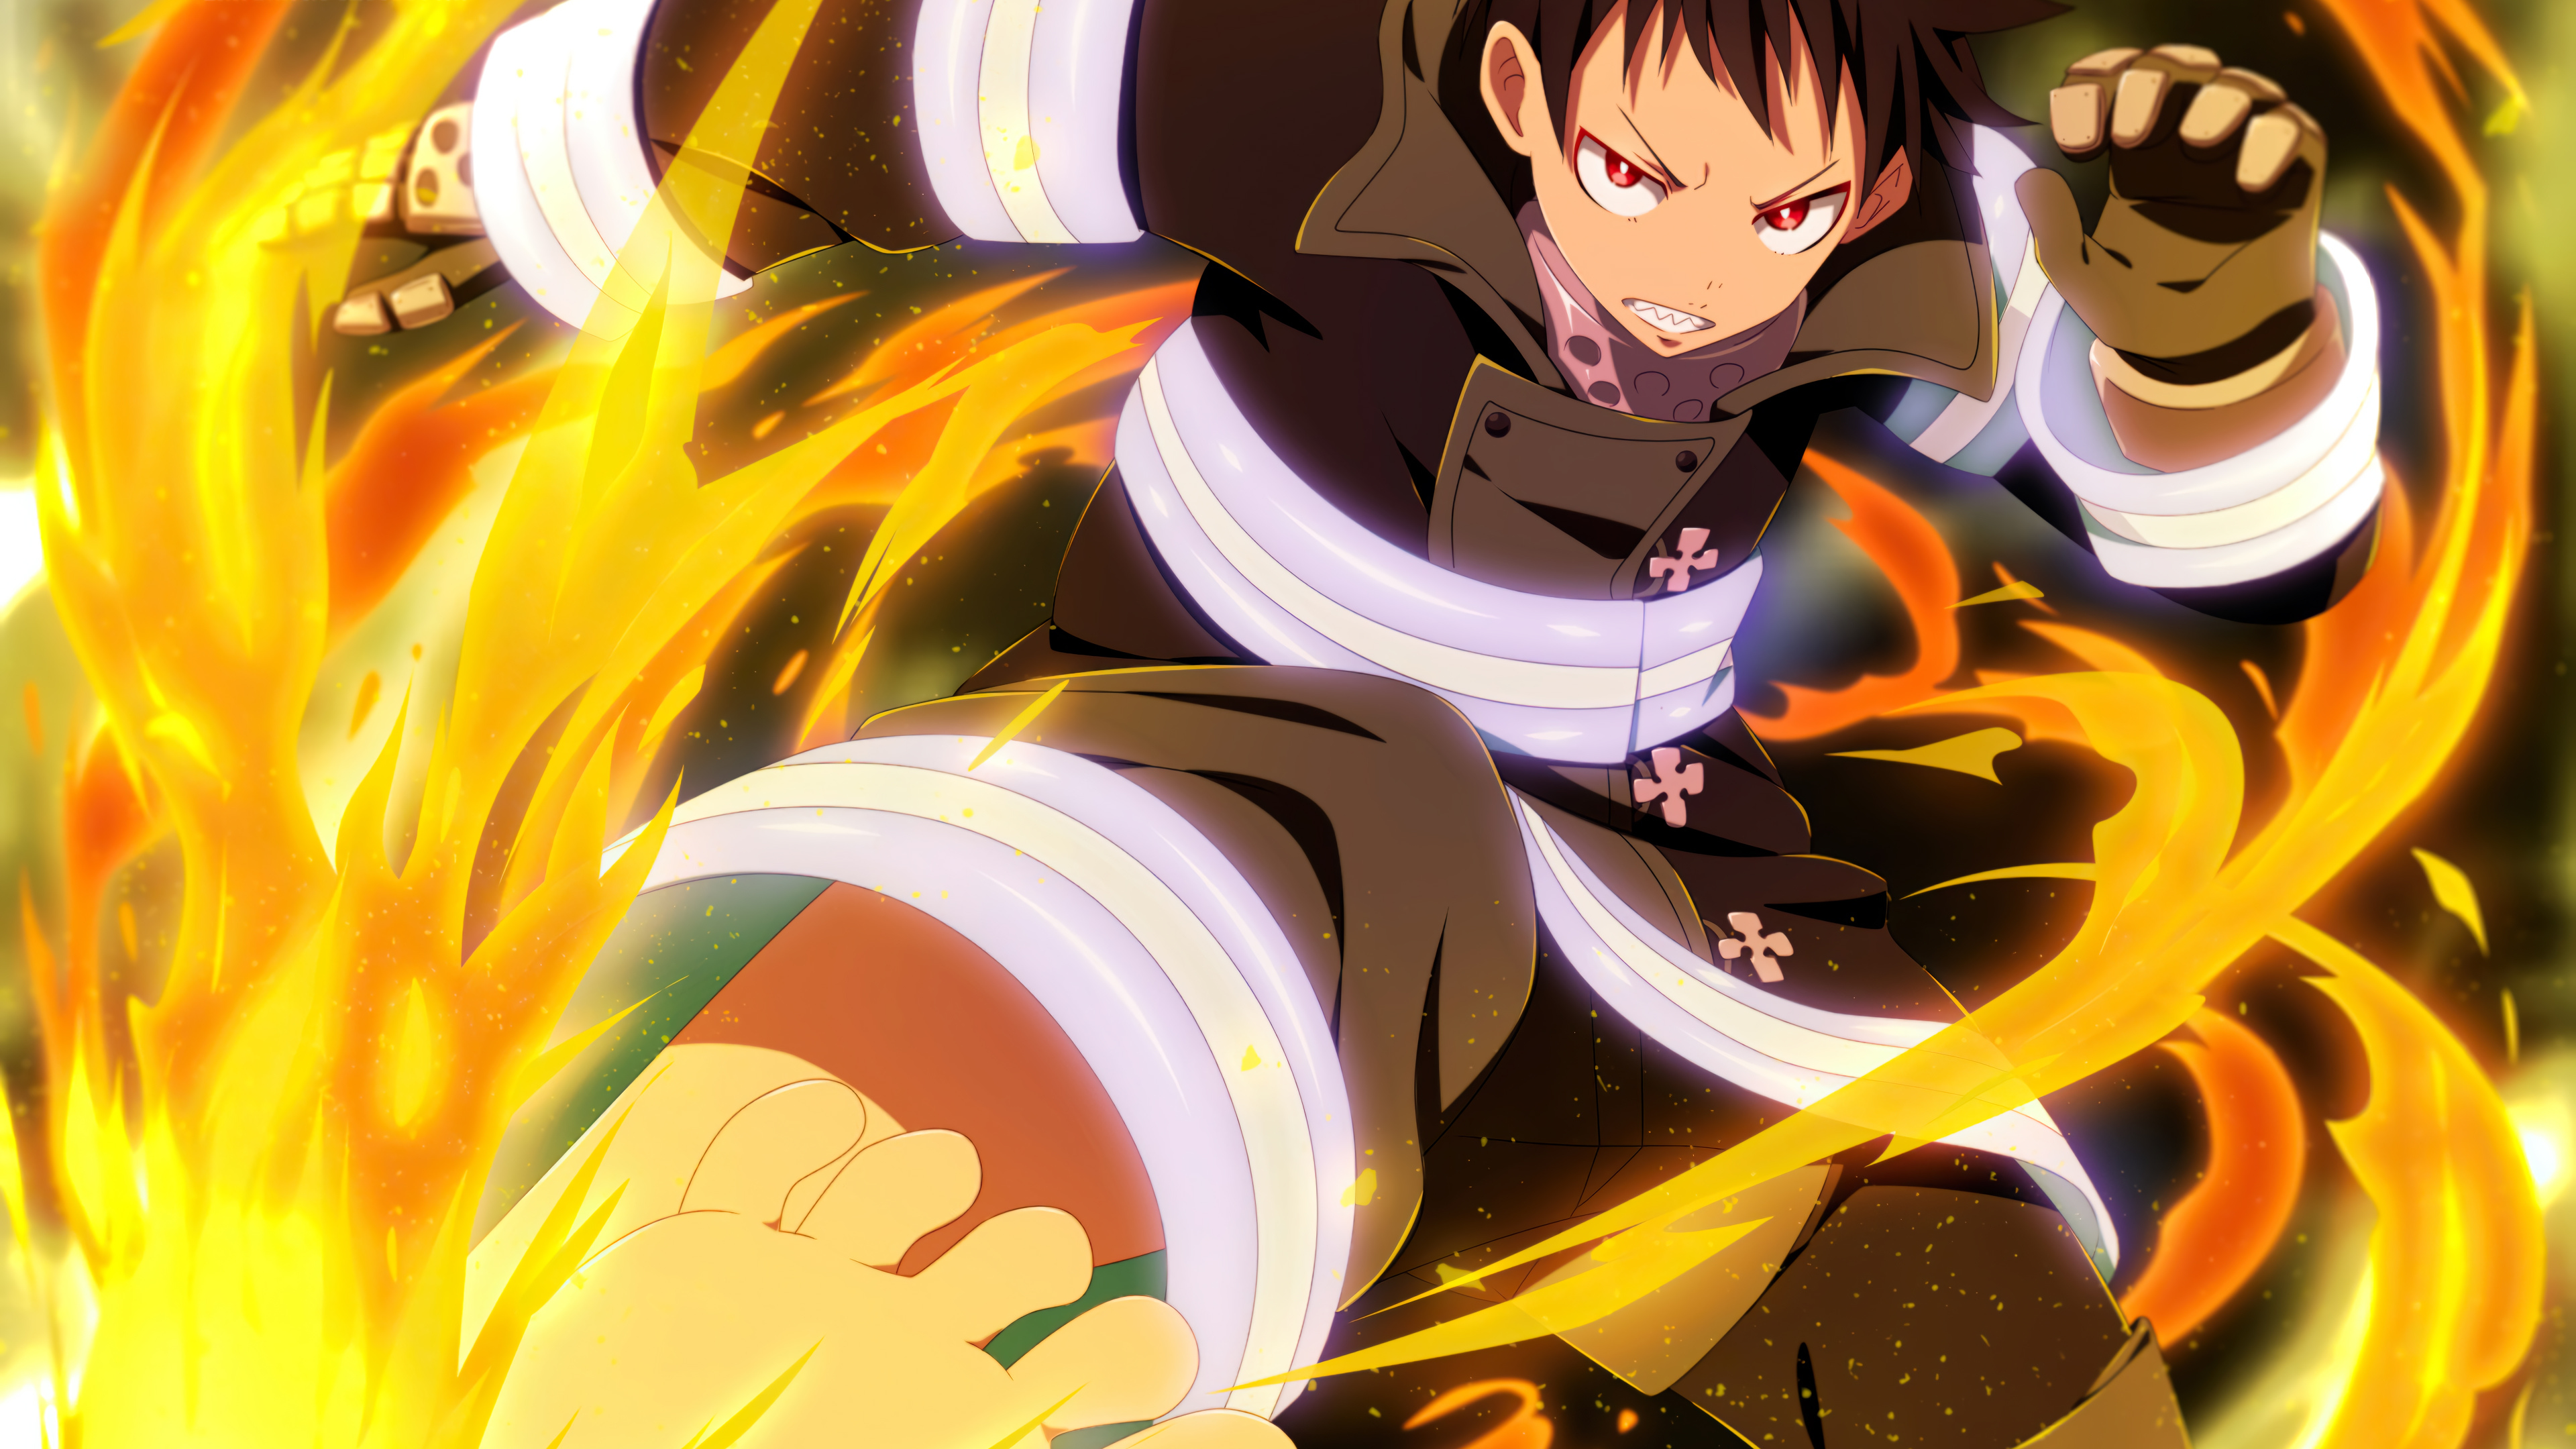 Shinra Kusakabe Fire Force Wallpaper 4k Ultra Hd Id 6531 Fire force ringtones and wallpapers. shinra kusakabe fire force wallpaper 4k